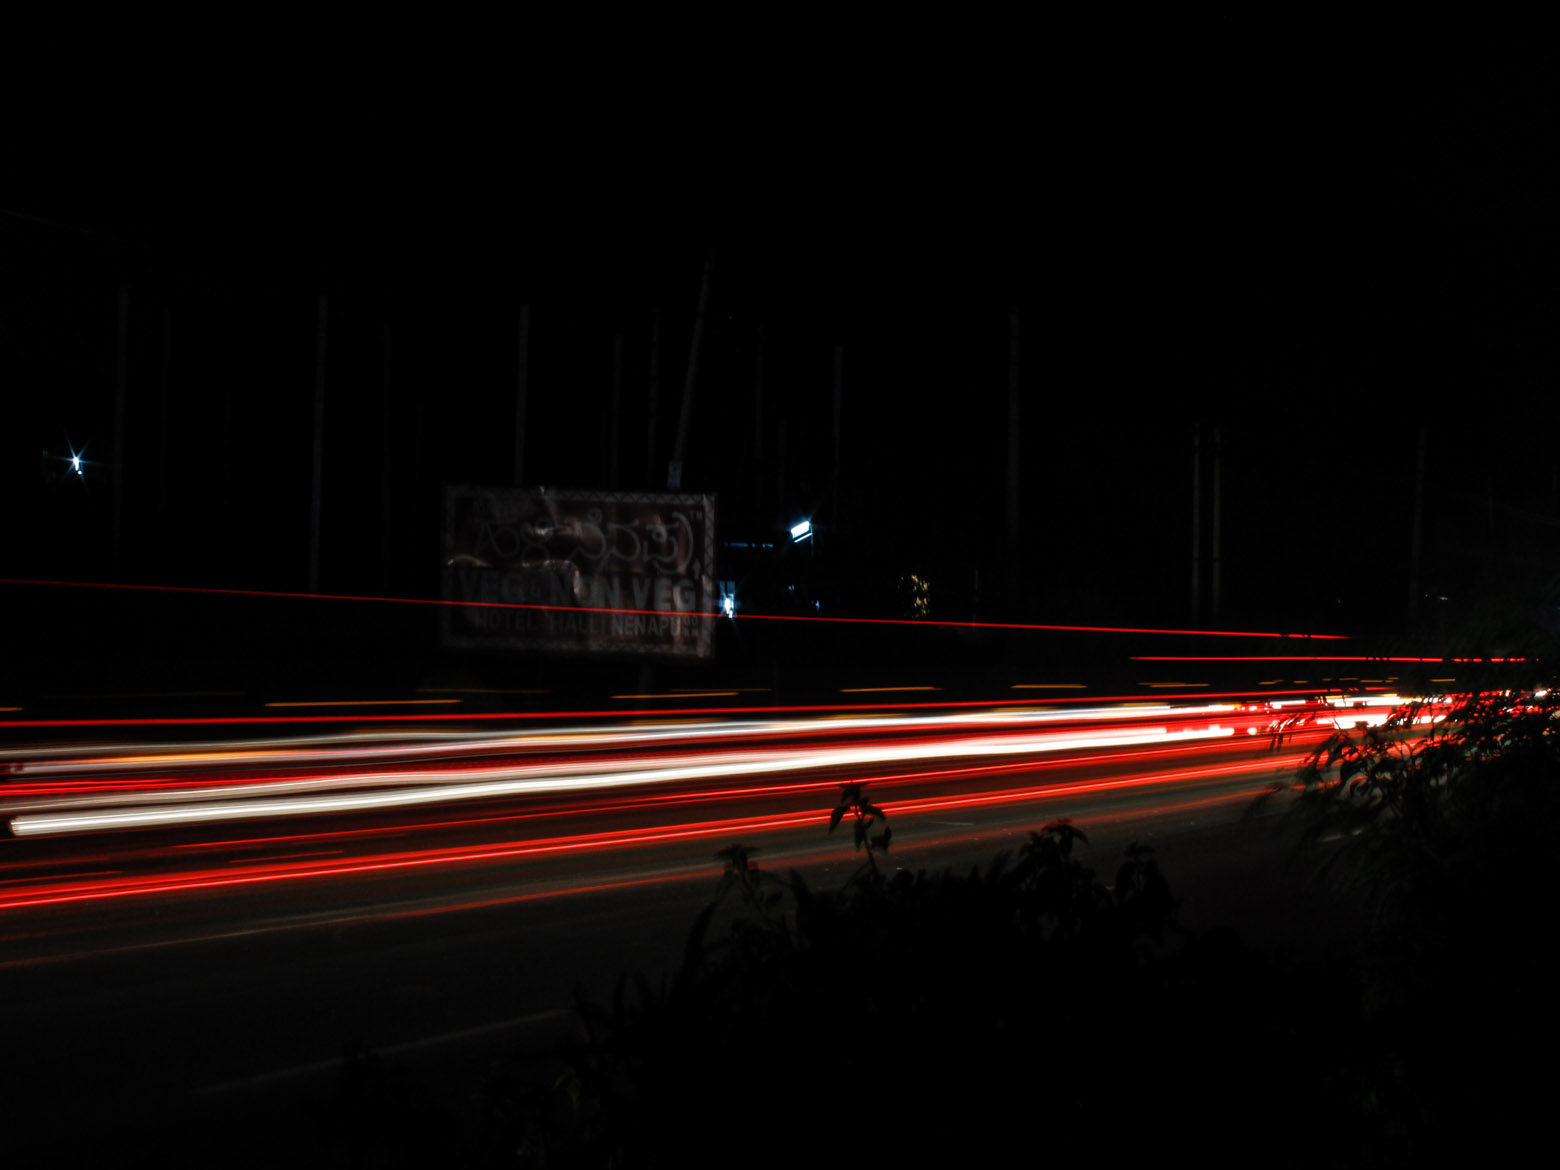 Vehicle Lights in HIghway during Nights